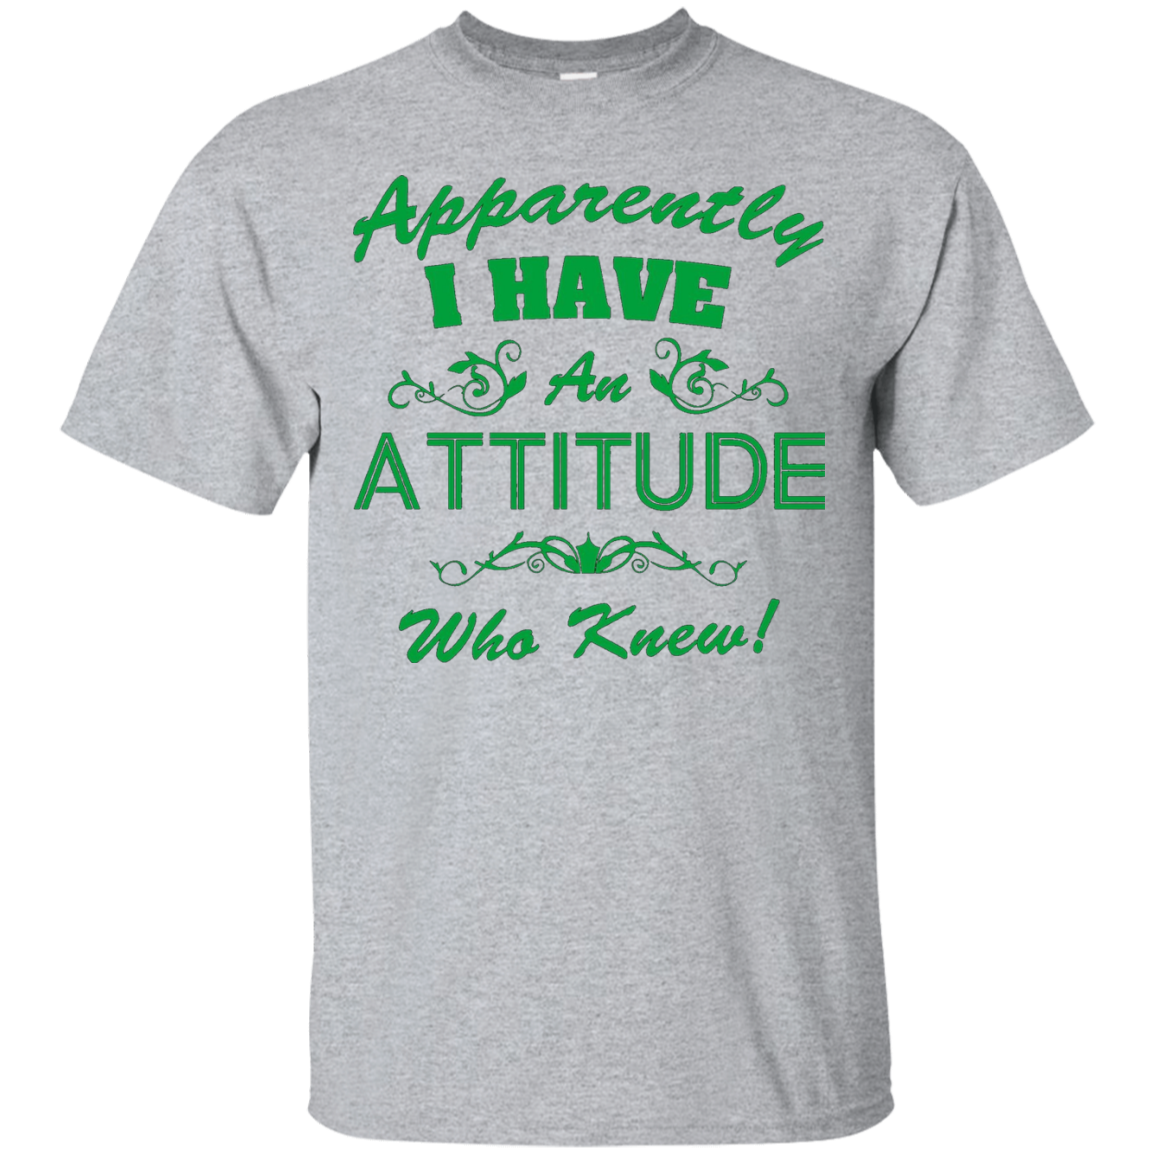 Apparently I have an Attitude who knew t shirt – T-Shirt